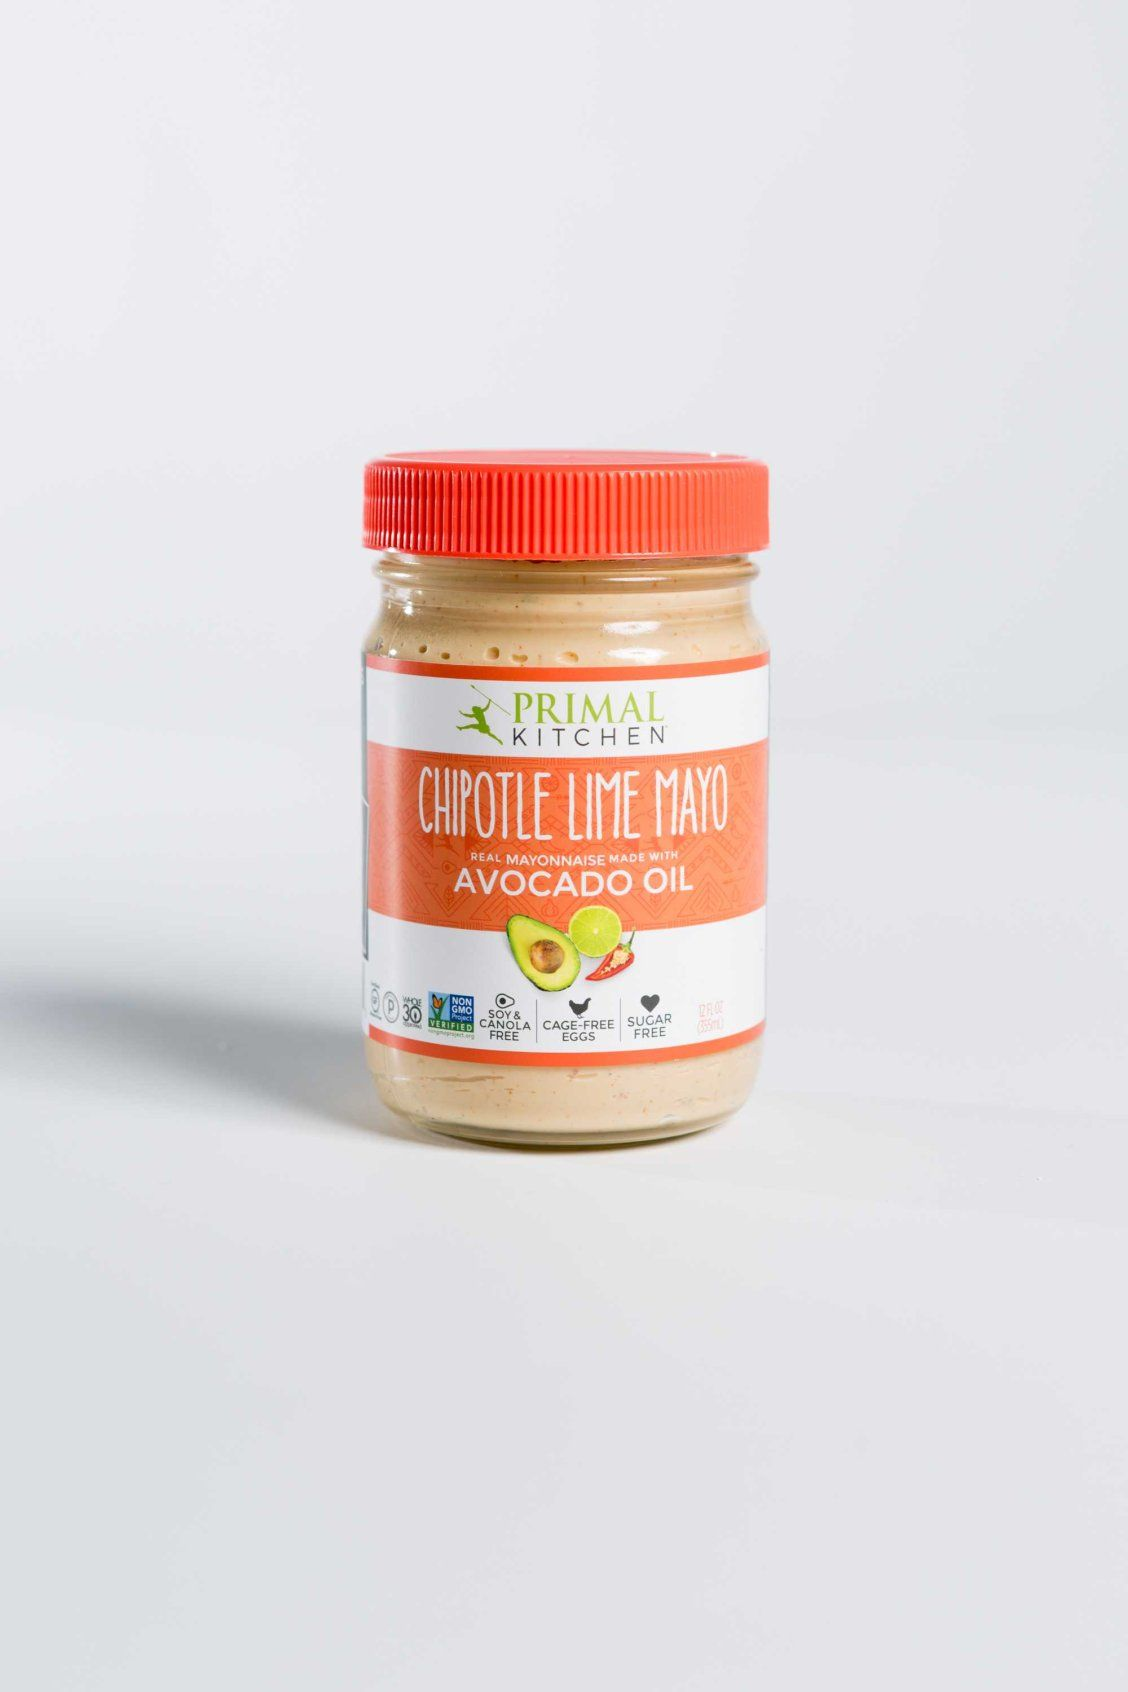 Primal Kitchen Chipotle Lime Mayo ($9.95): Made with avocado oil ...